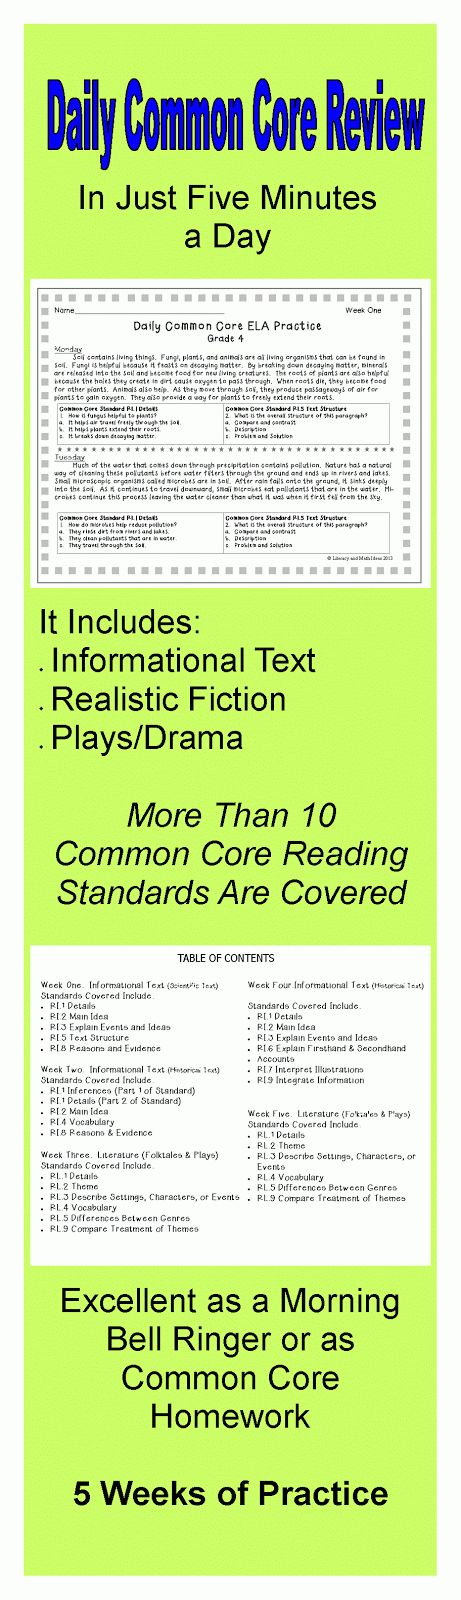 {Daily Common Core Reading Practice} OVER 10 COMMON CORE STANDARDS ARE COVERED. Informational Text, realistic fiction, historical fiction, plays/drama and more are included. Many standards repeat across the weeks for steady review. Students build content area knowledge as they review for Common Core. FIVE WEEKS ARE INCLUDED